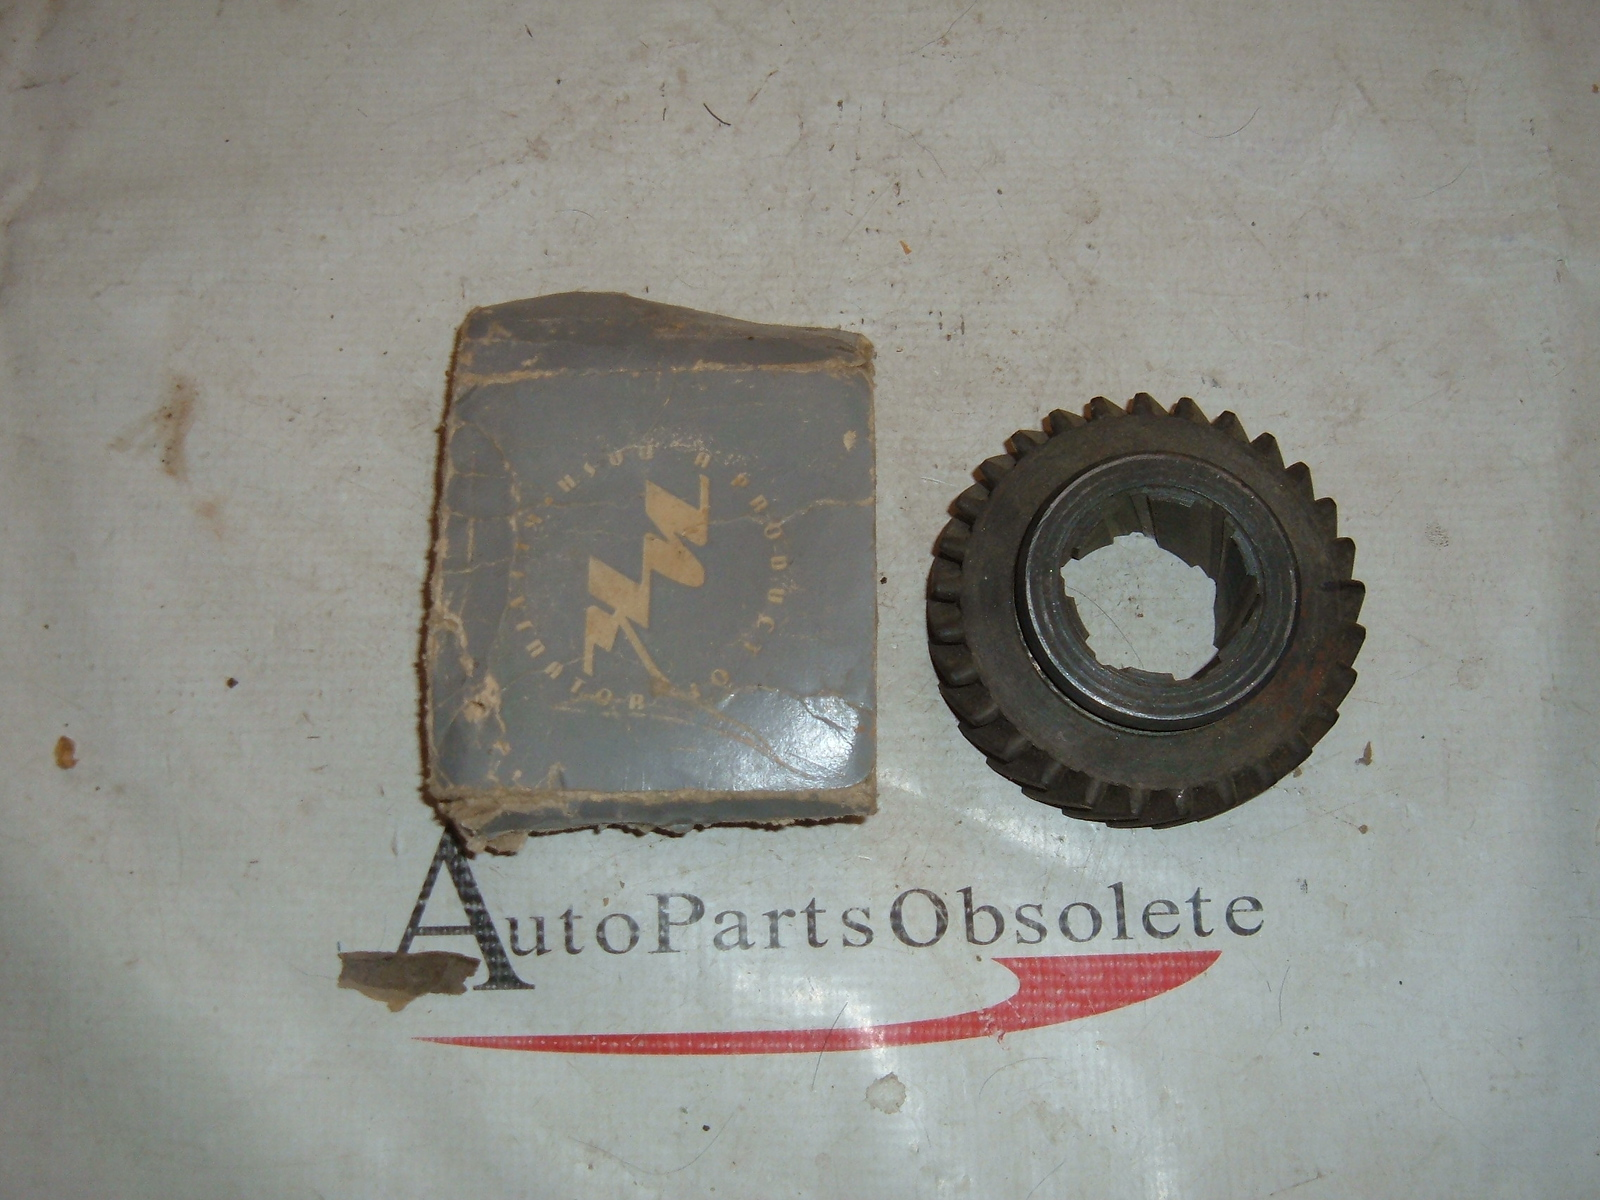 1941 42 45 46 47 nash transmission gear nos 3105502 (z 3105502)